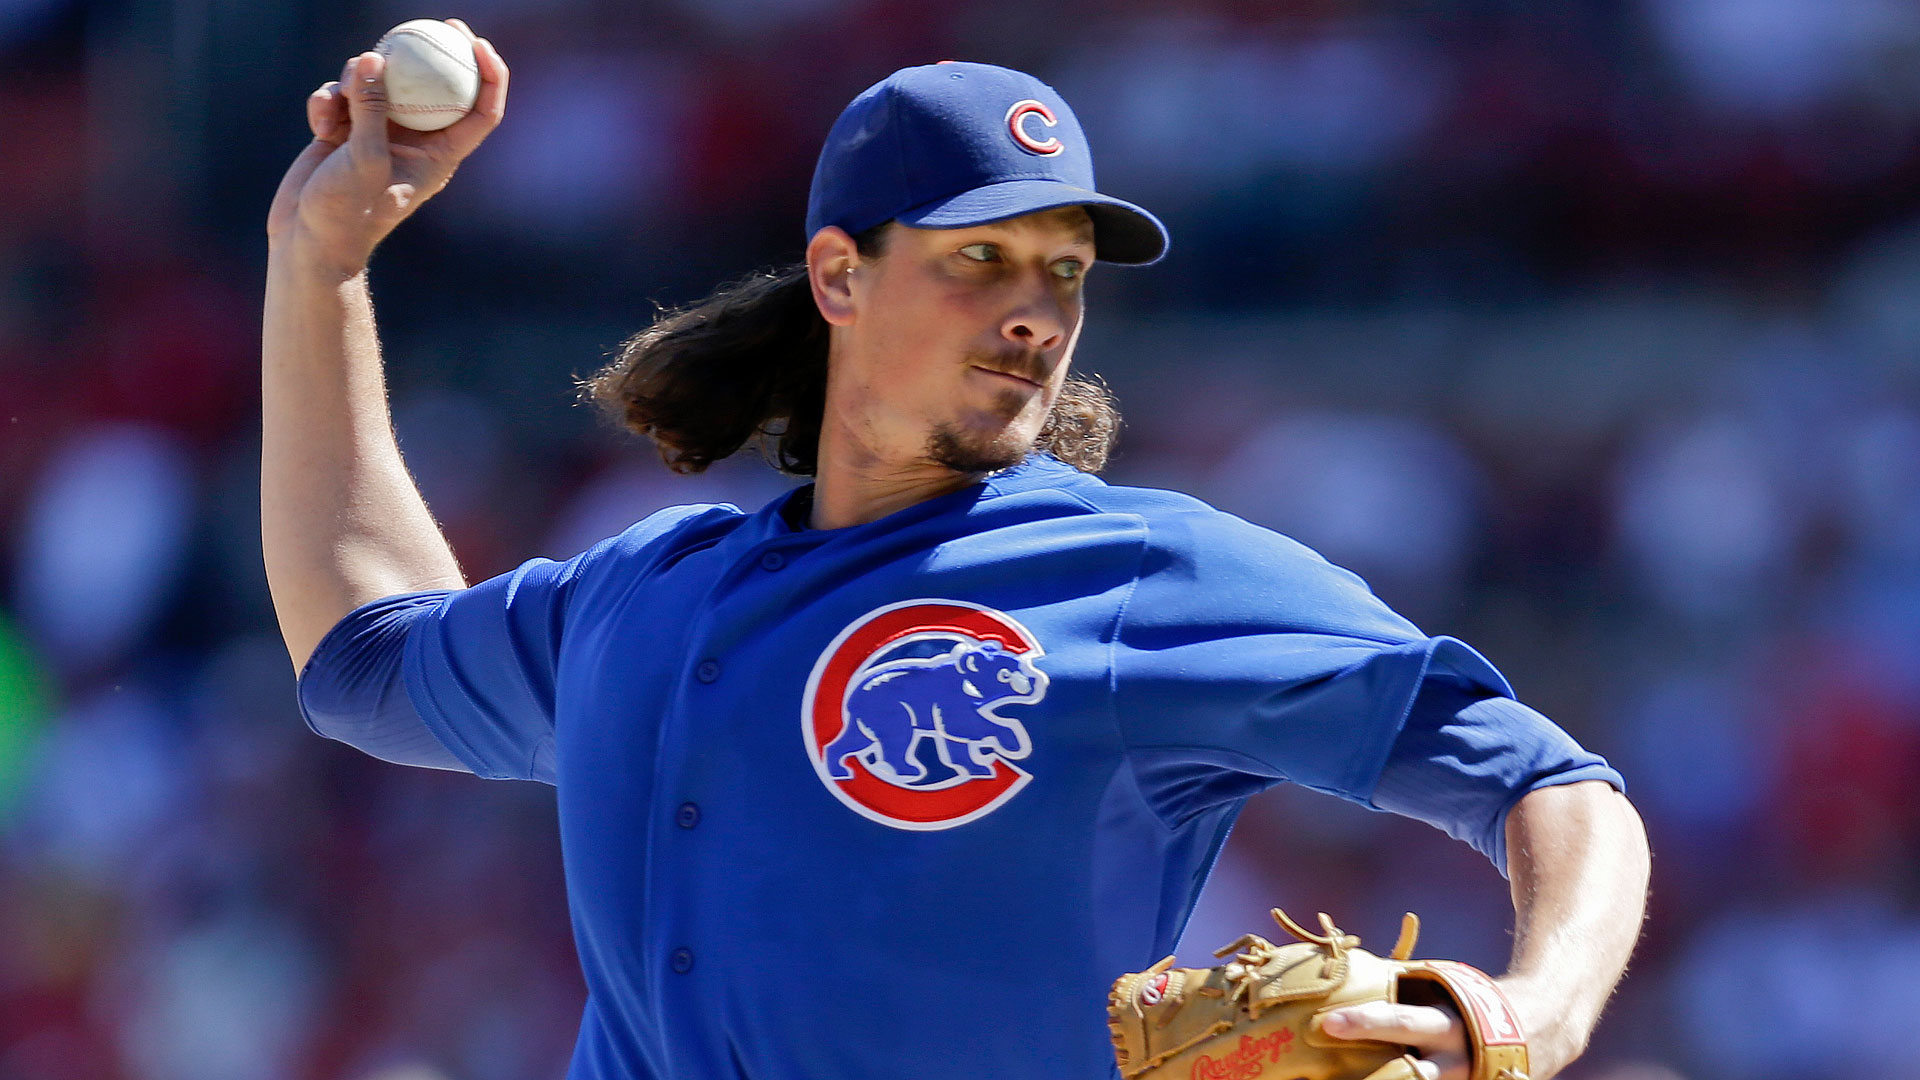 Fantasy baseball team report: Chicago Cubs